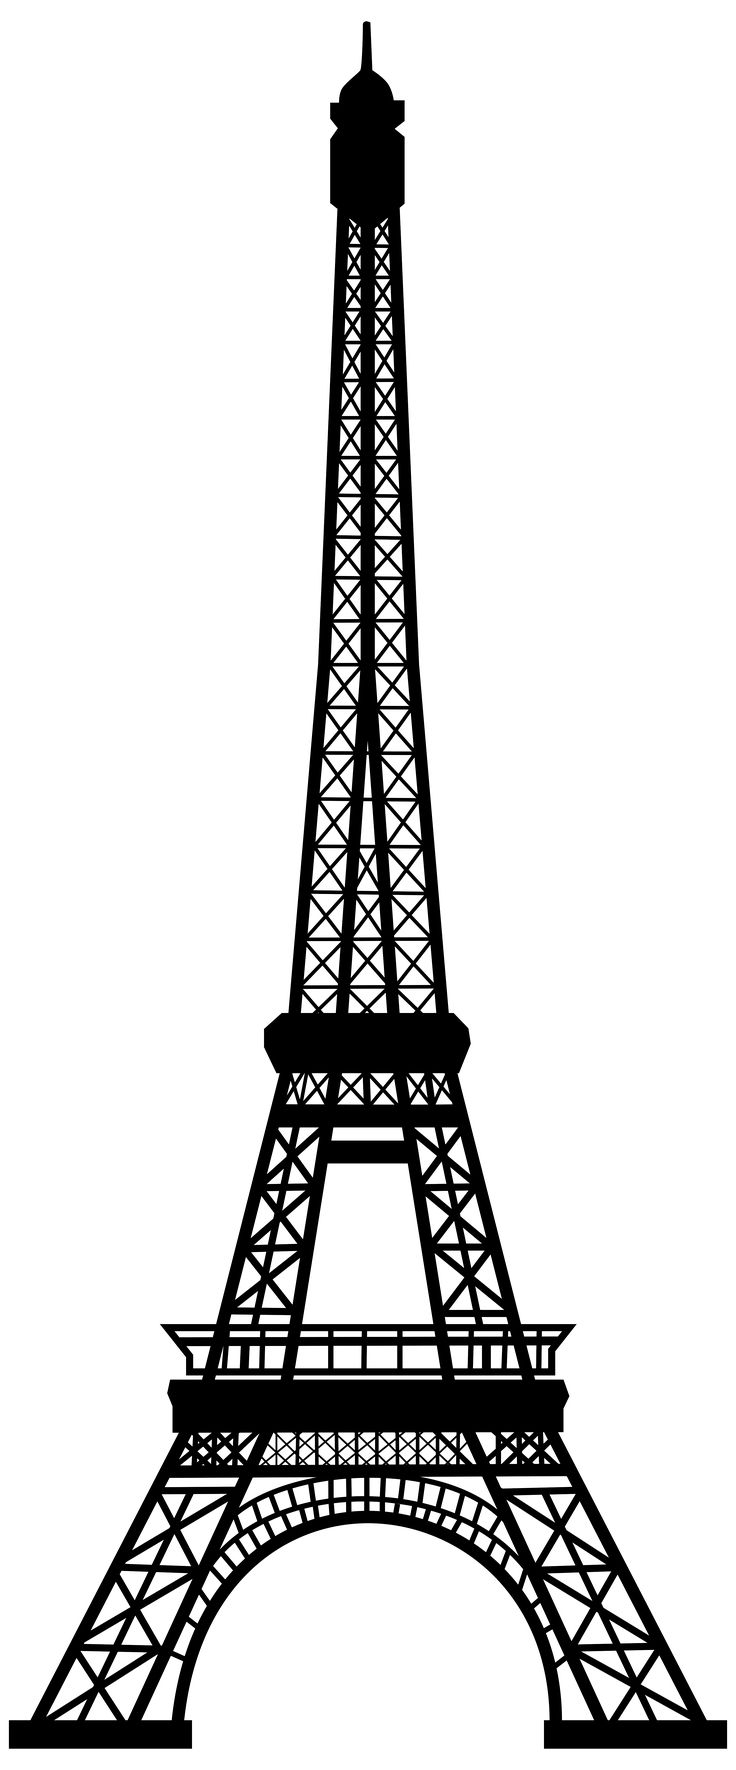 drawings of eiffel tower 70 easy and beautiful eiffel tower drawing and sketches drawings of tower eiffel